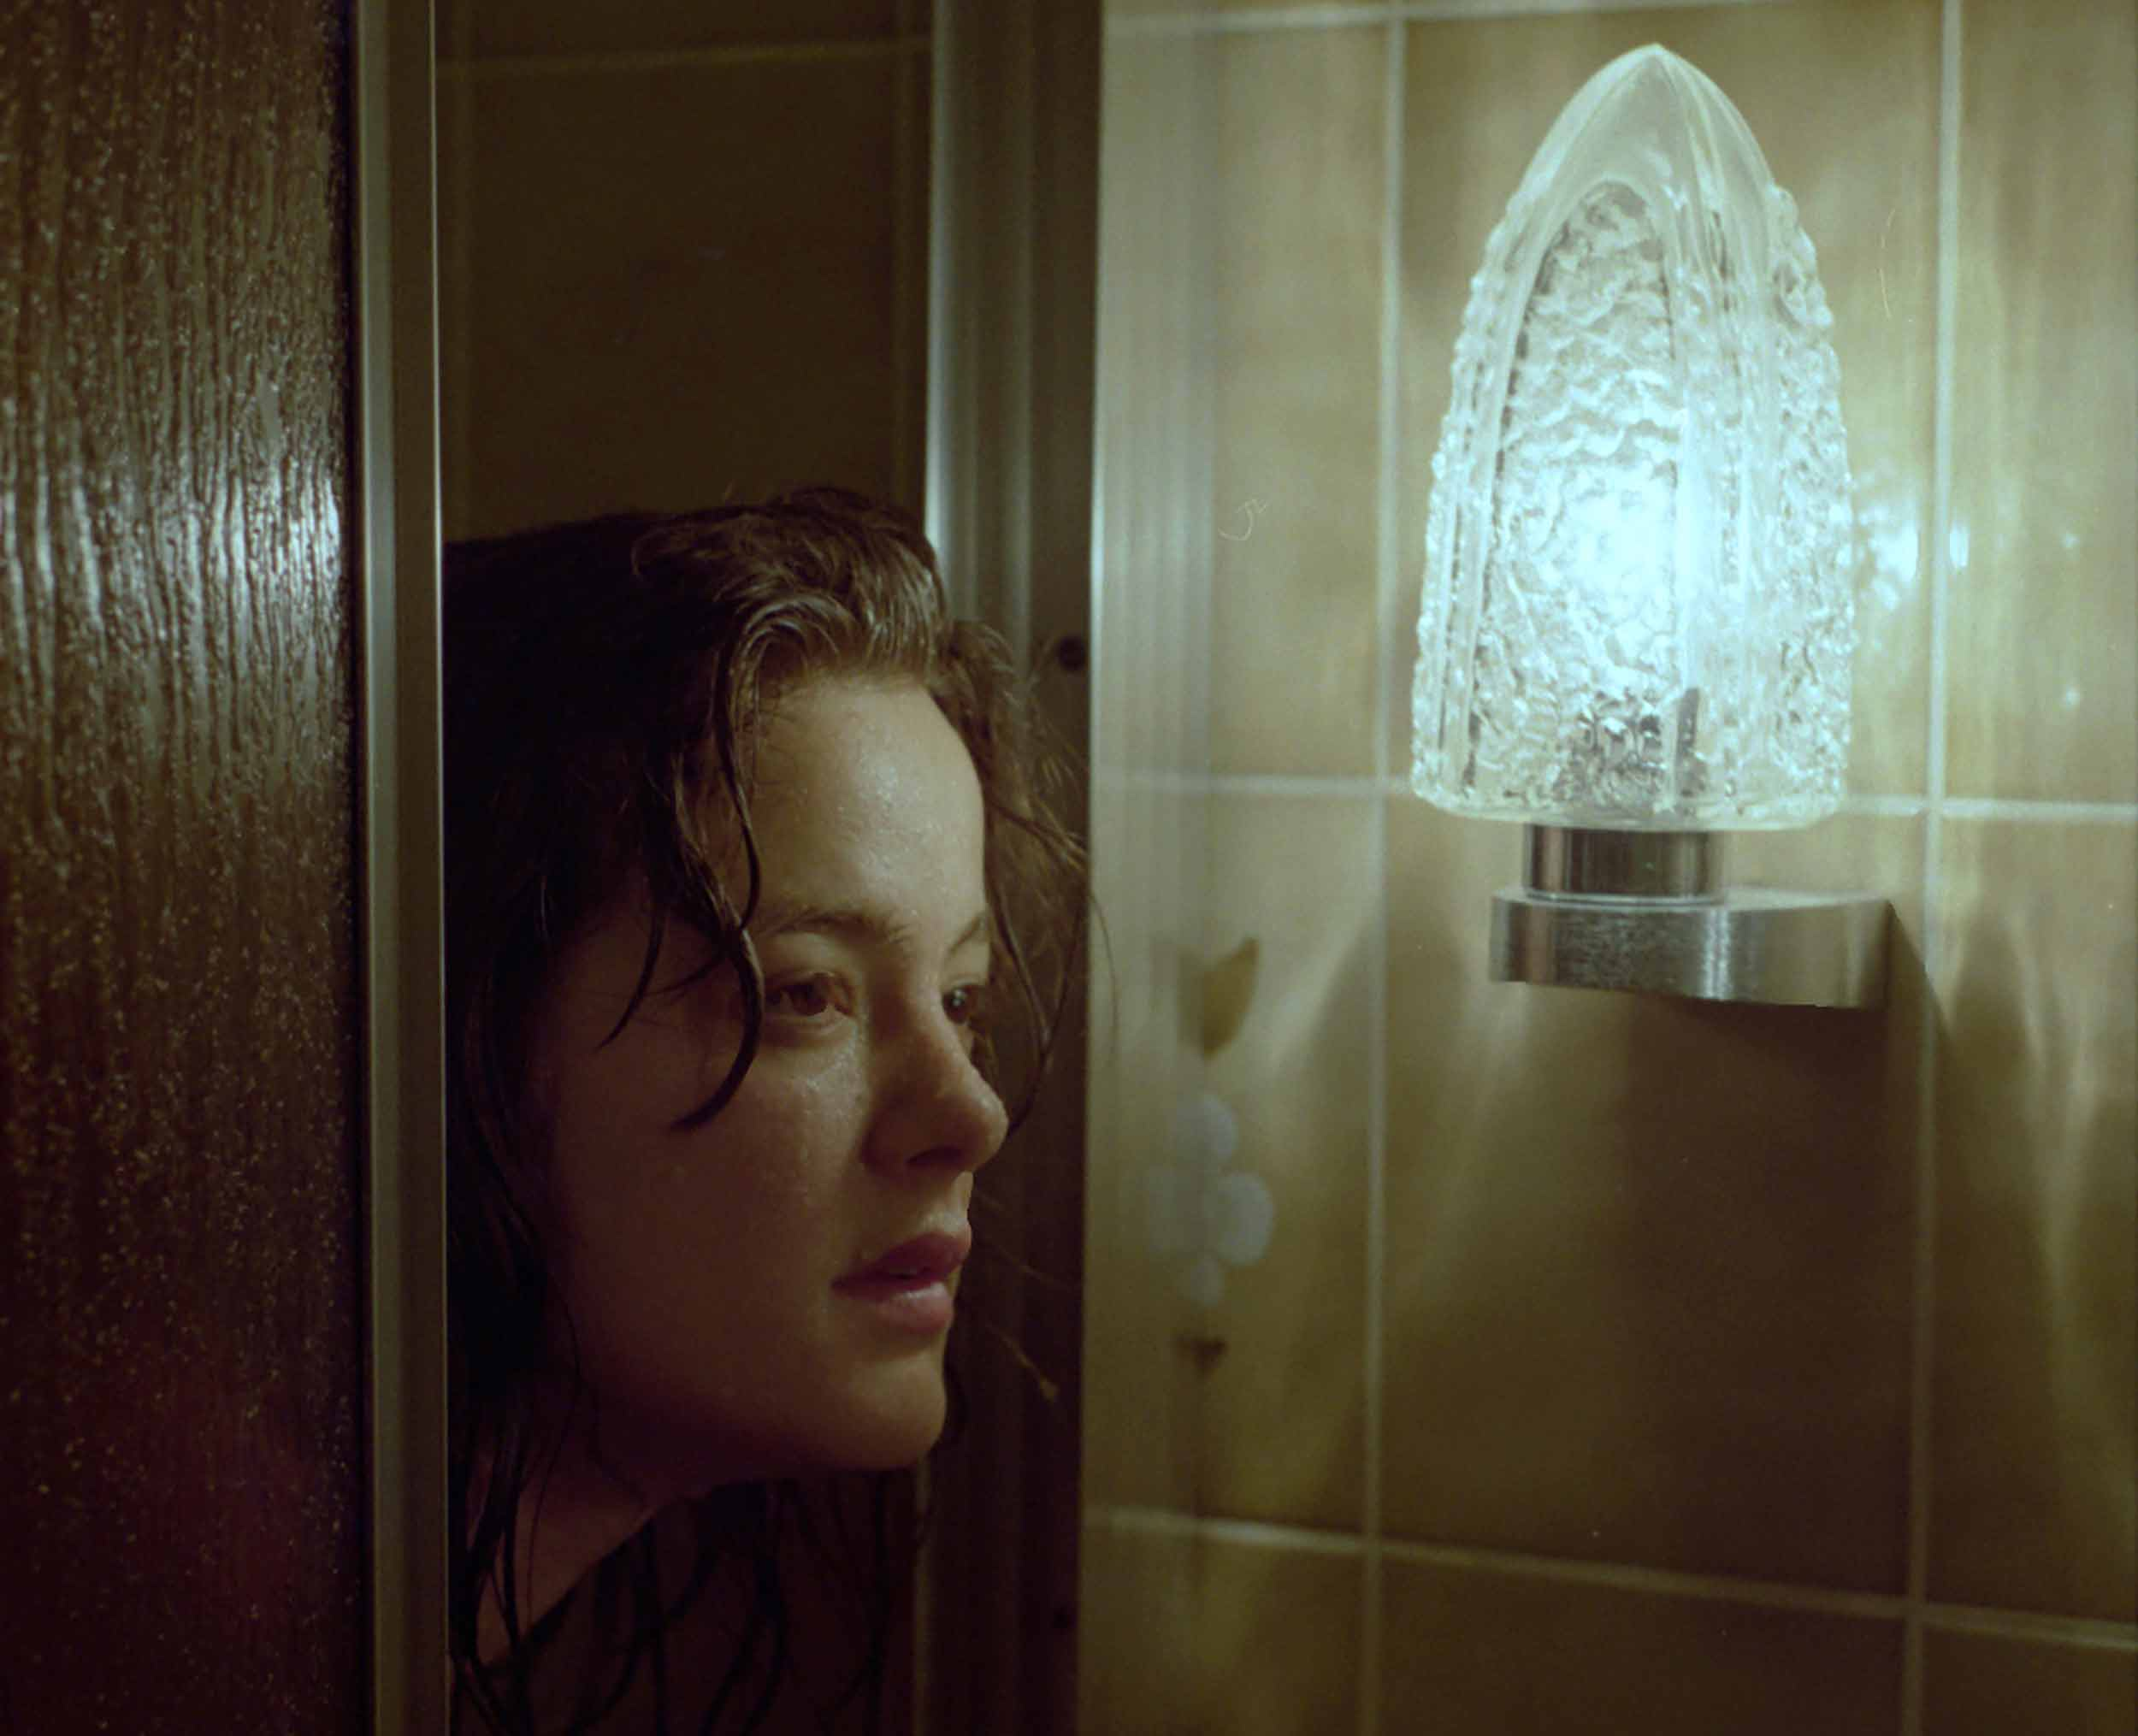 paula hummer, young photographyer, art, student, street photography, portrait, bathroom